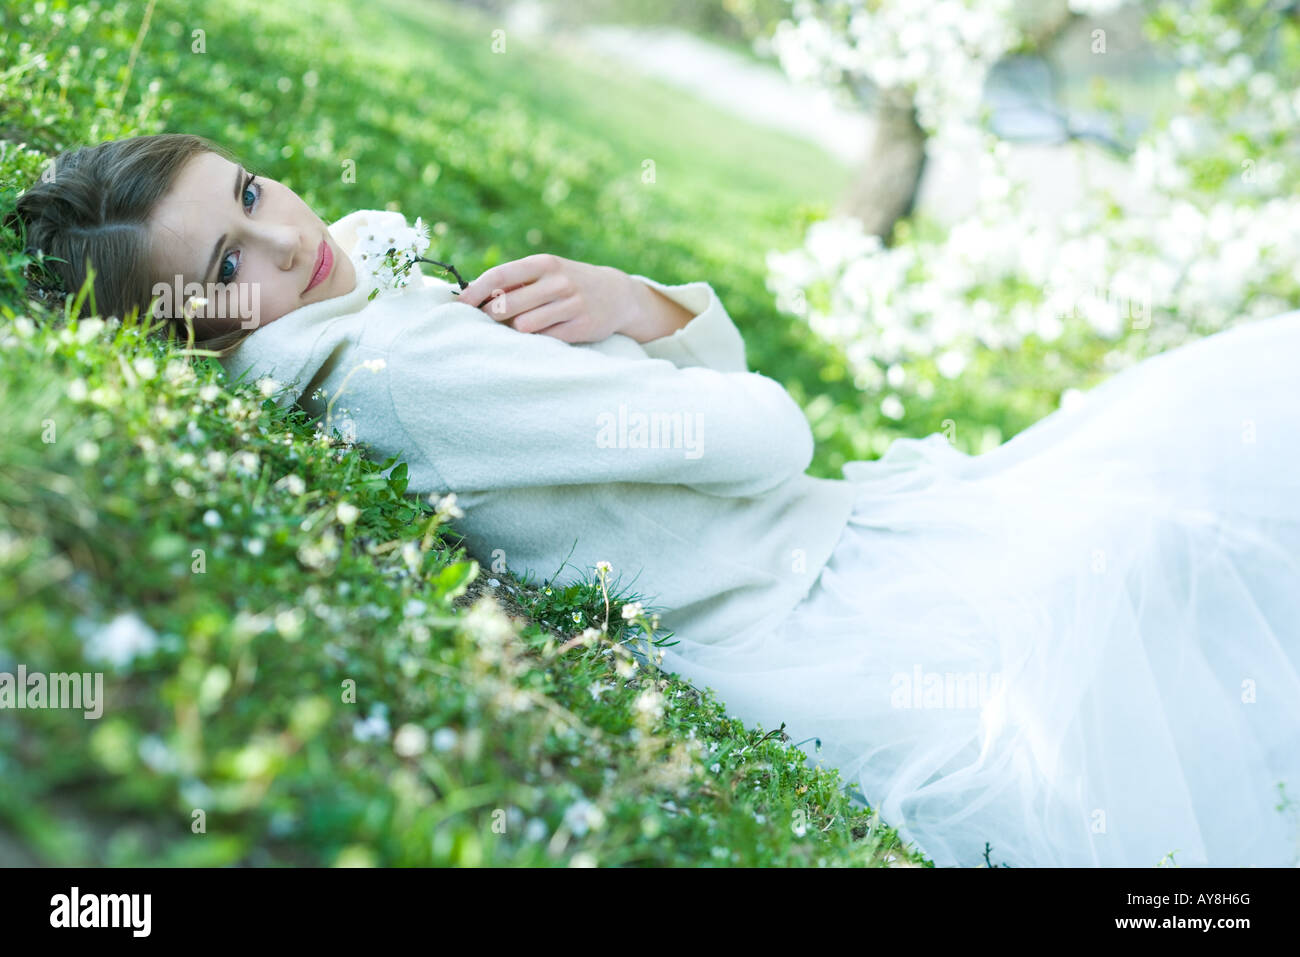 Teenage girl lying on the ground, holding flowers, looking at camera - Stock Image